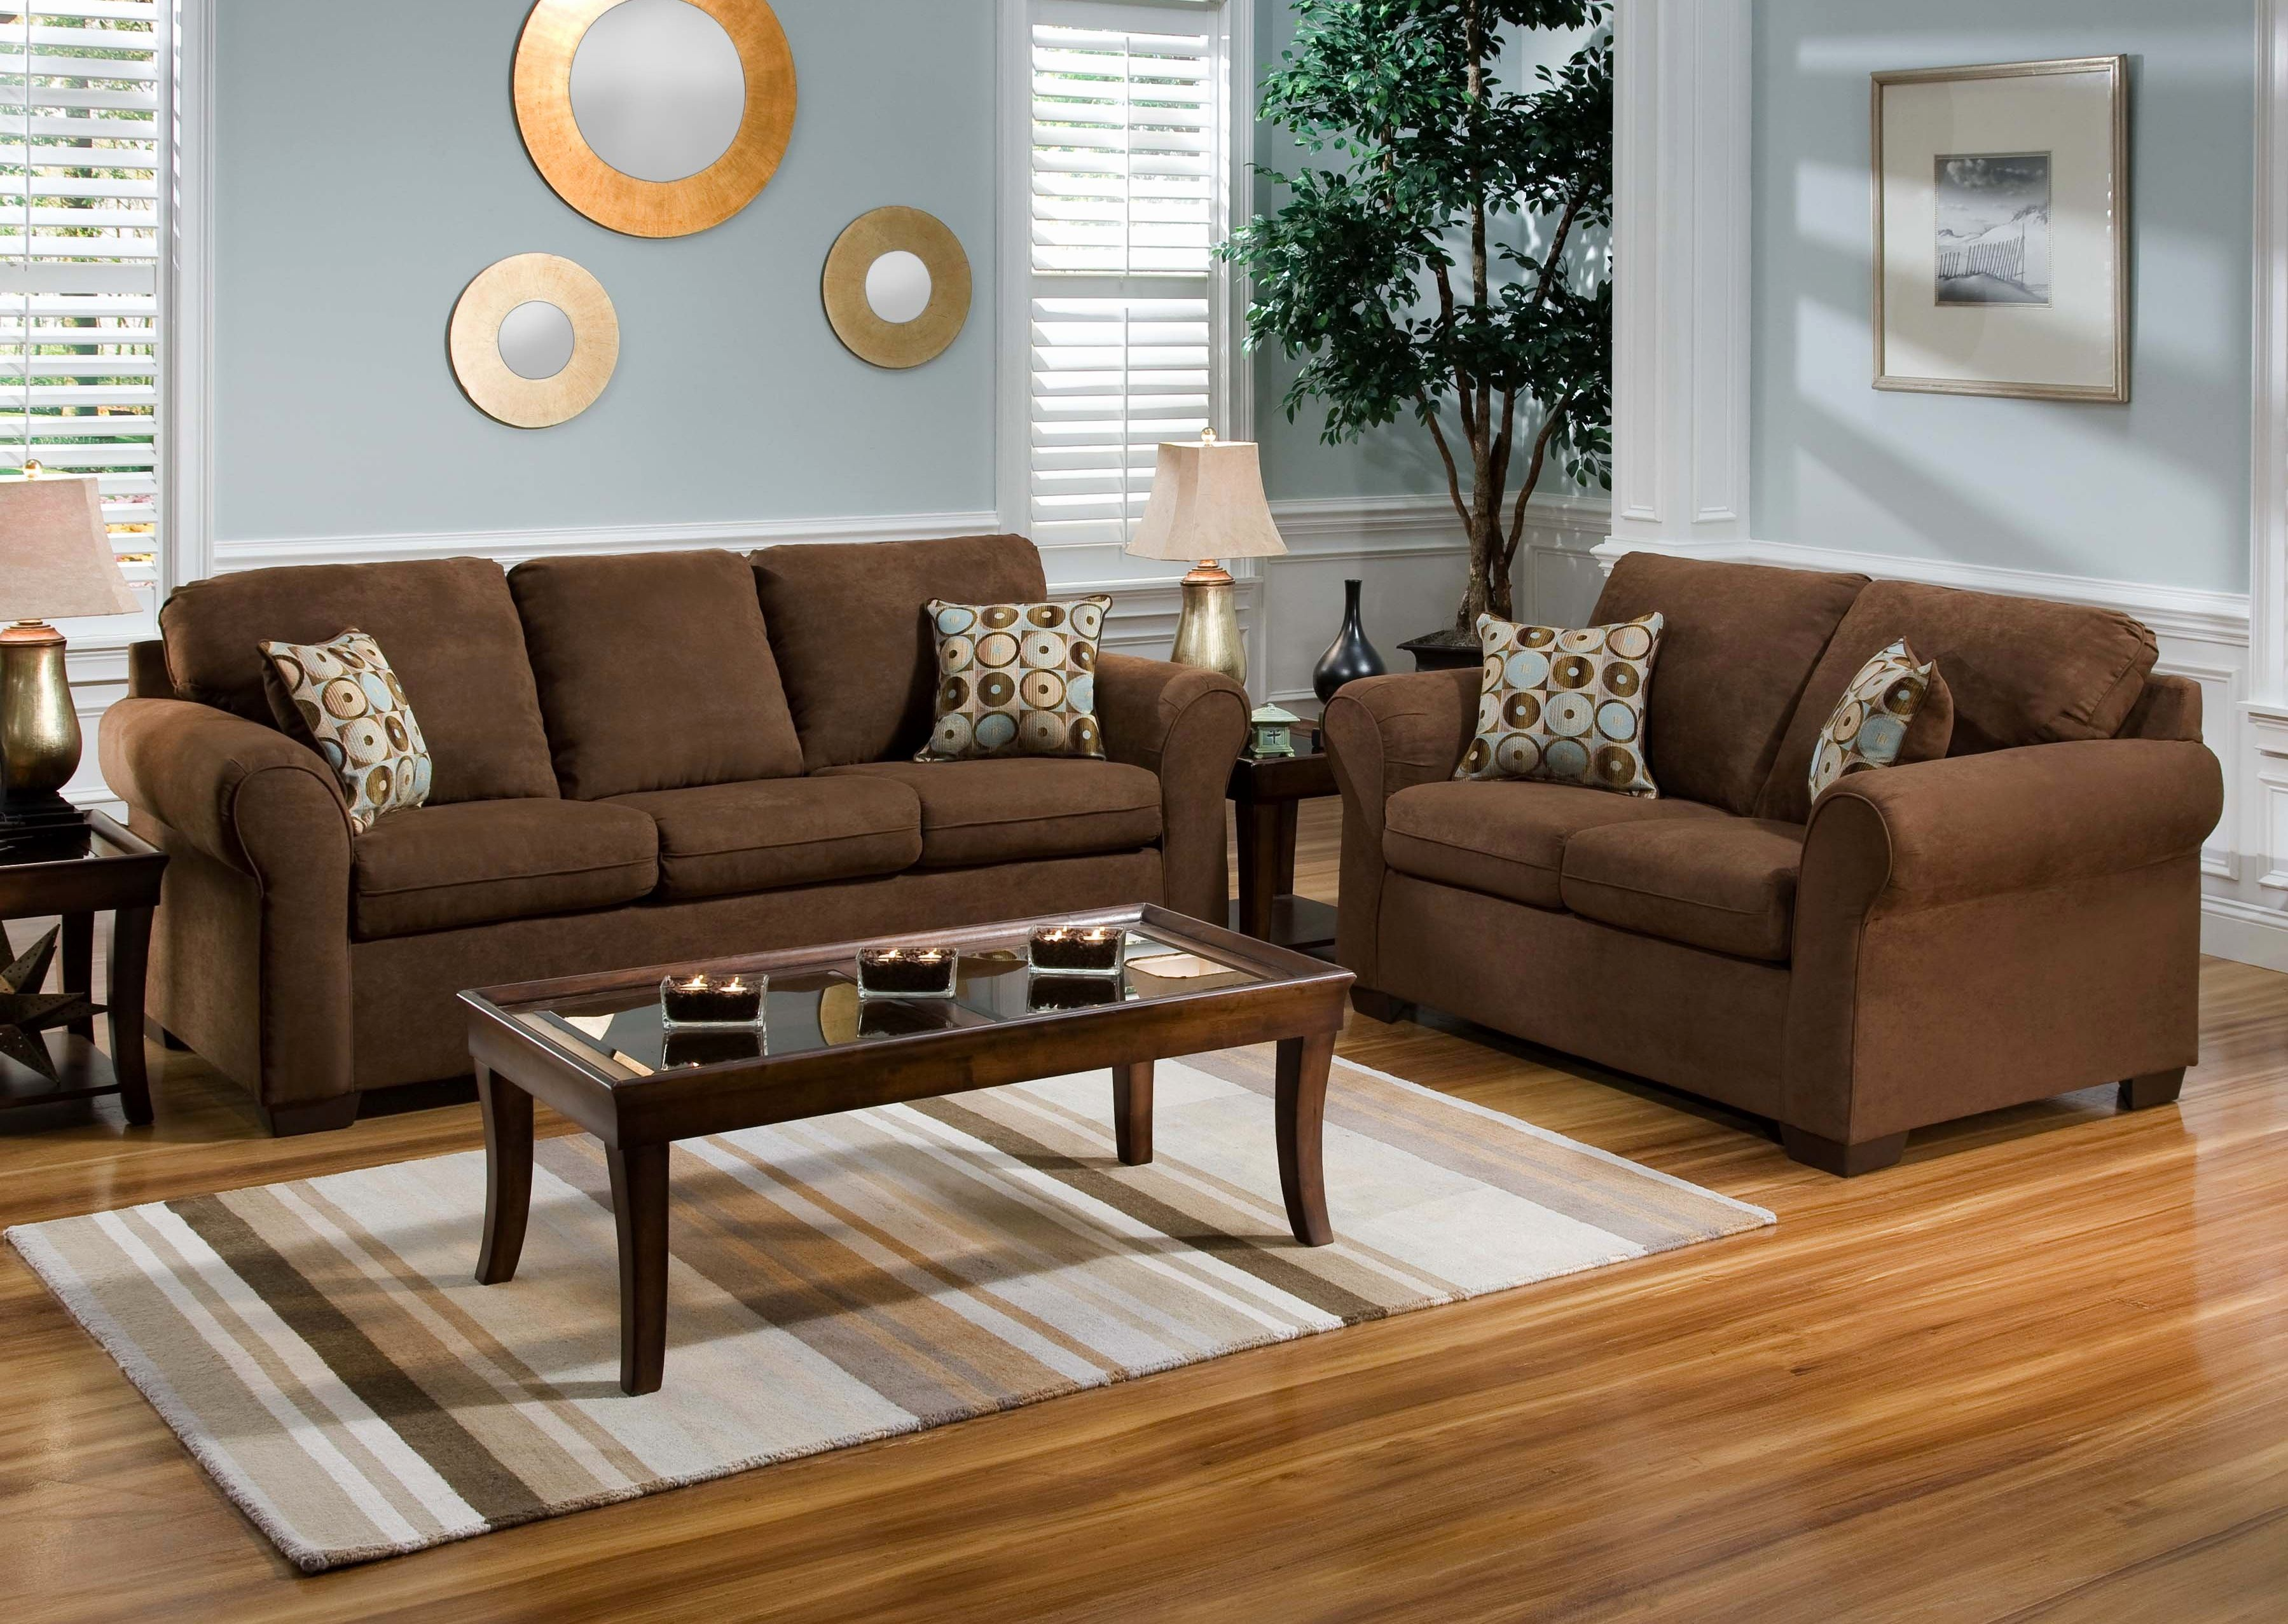 Luxury Living Room Wall Colors With Brown Sofas Art Living Room Wall Colors With Brown Sofas Brown Living Room Decor Brown Sofa Living Room Living Room Colors